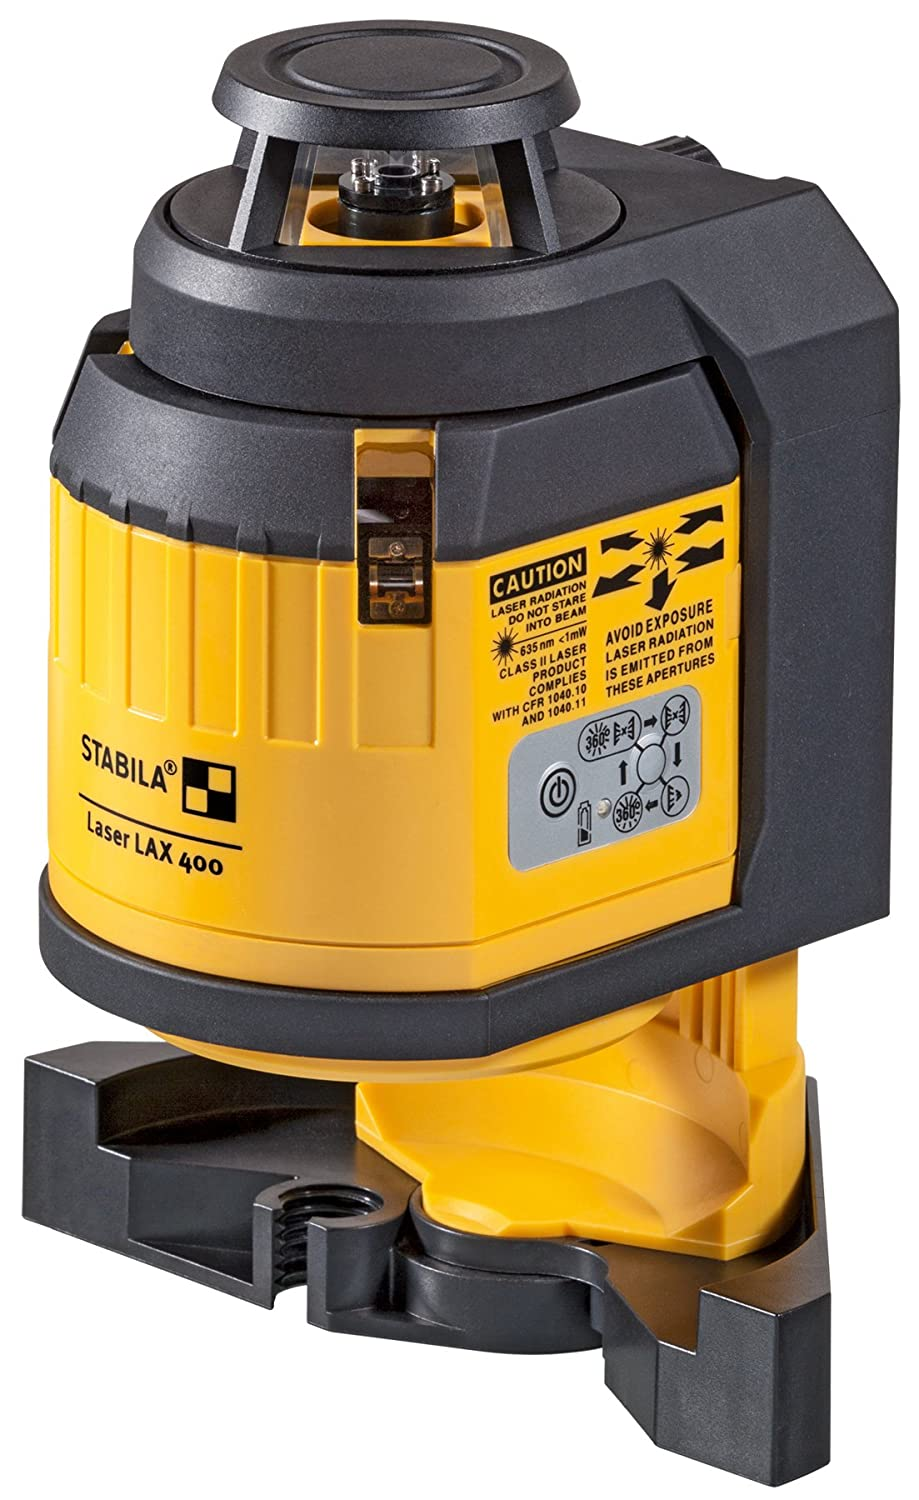 Stabila 03360 Type LAX400 ProLiner Multi Line Laser Kit